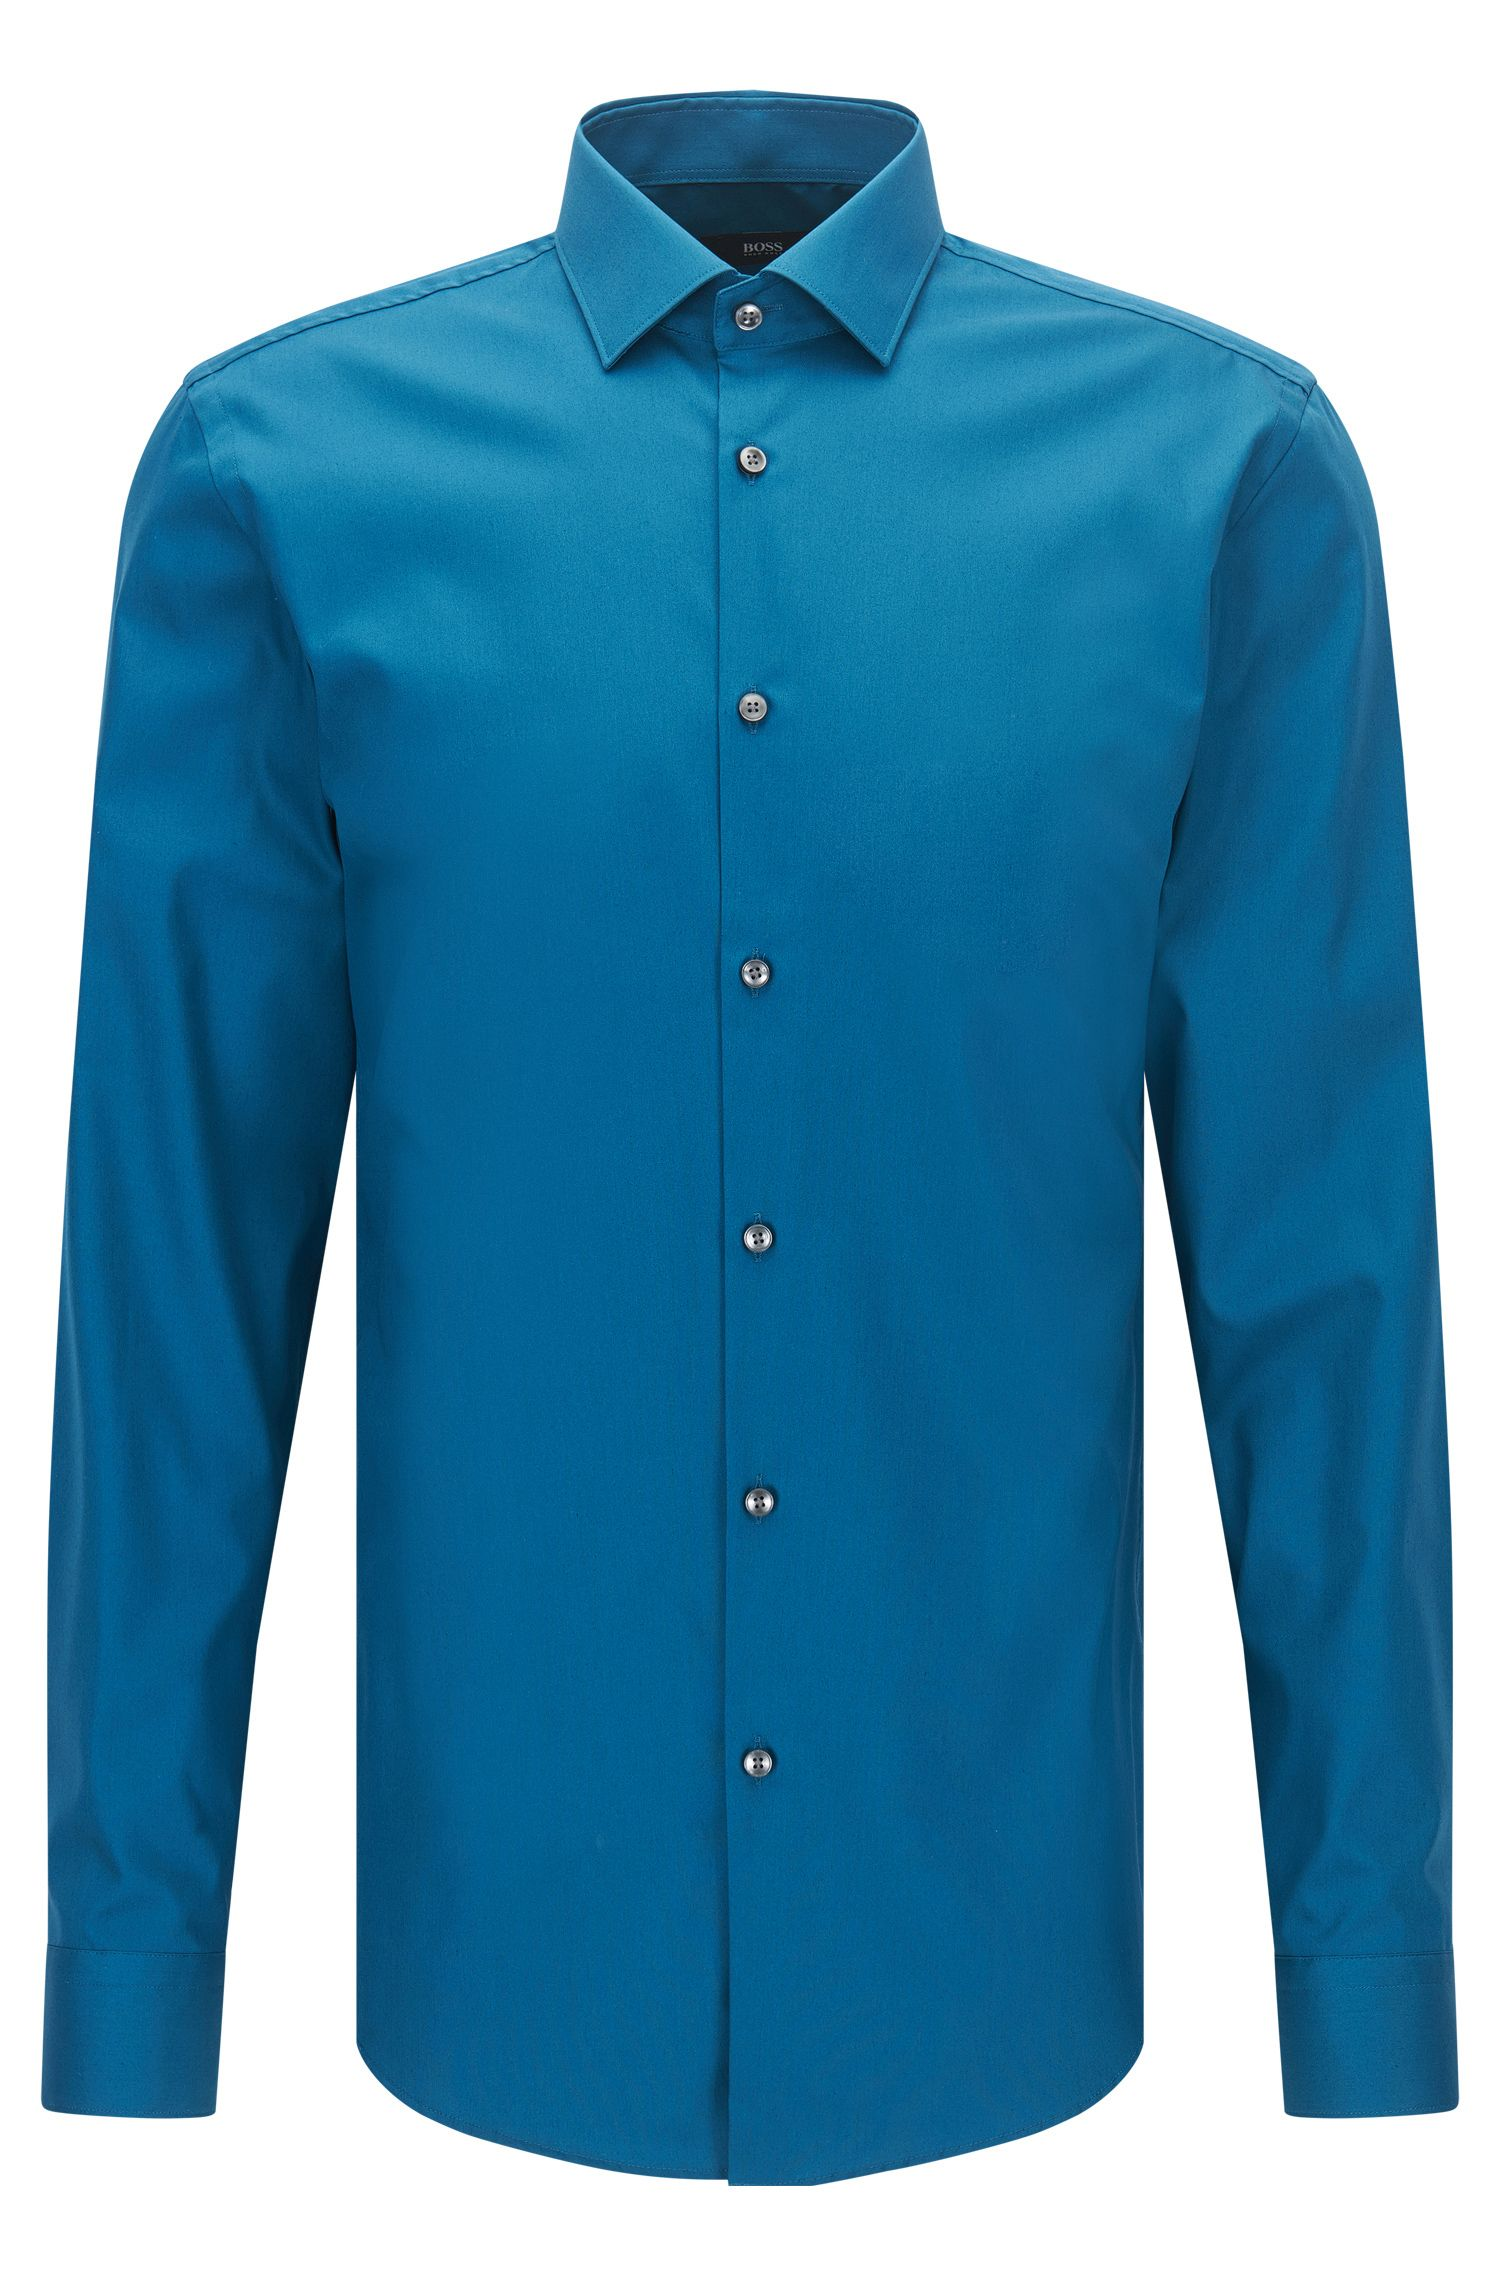 Plain slim-fit cotton poplin shirt